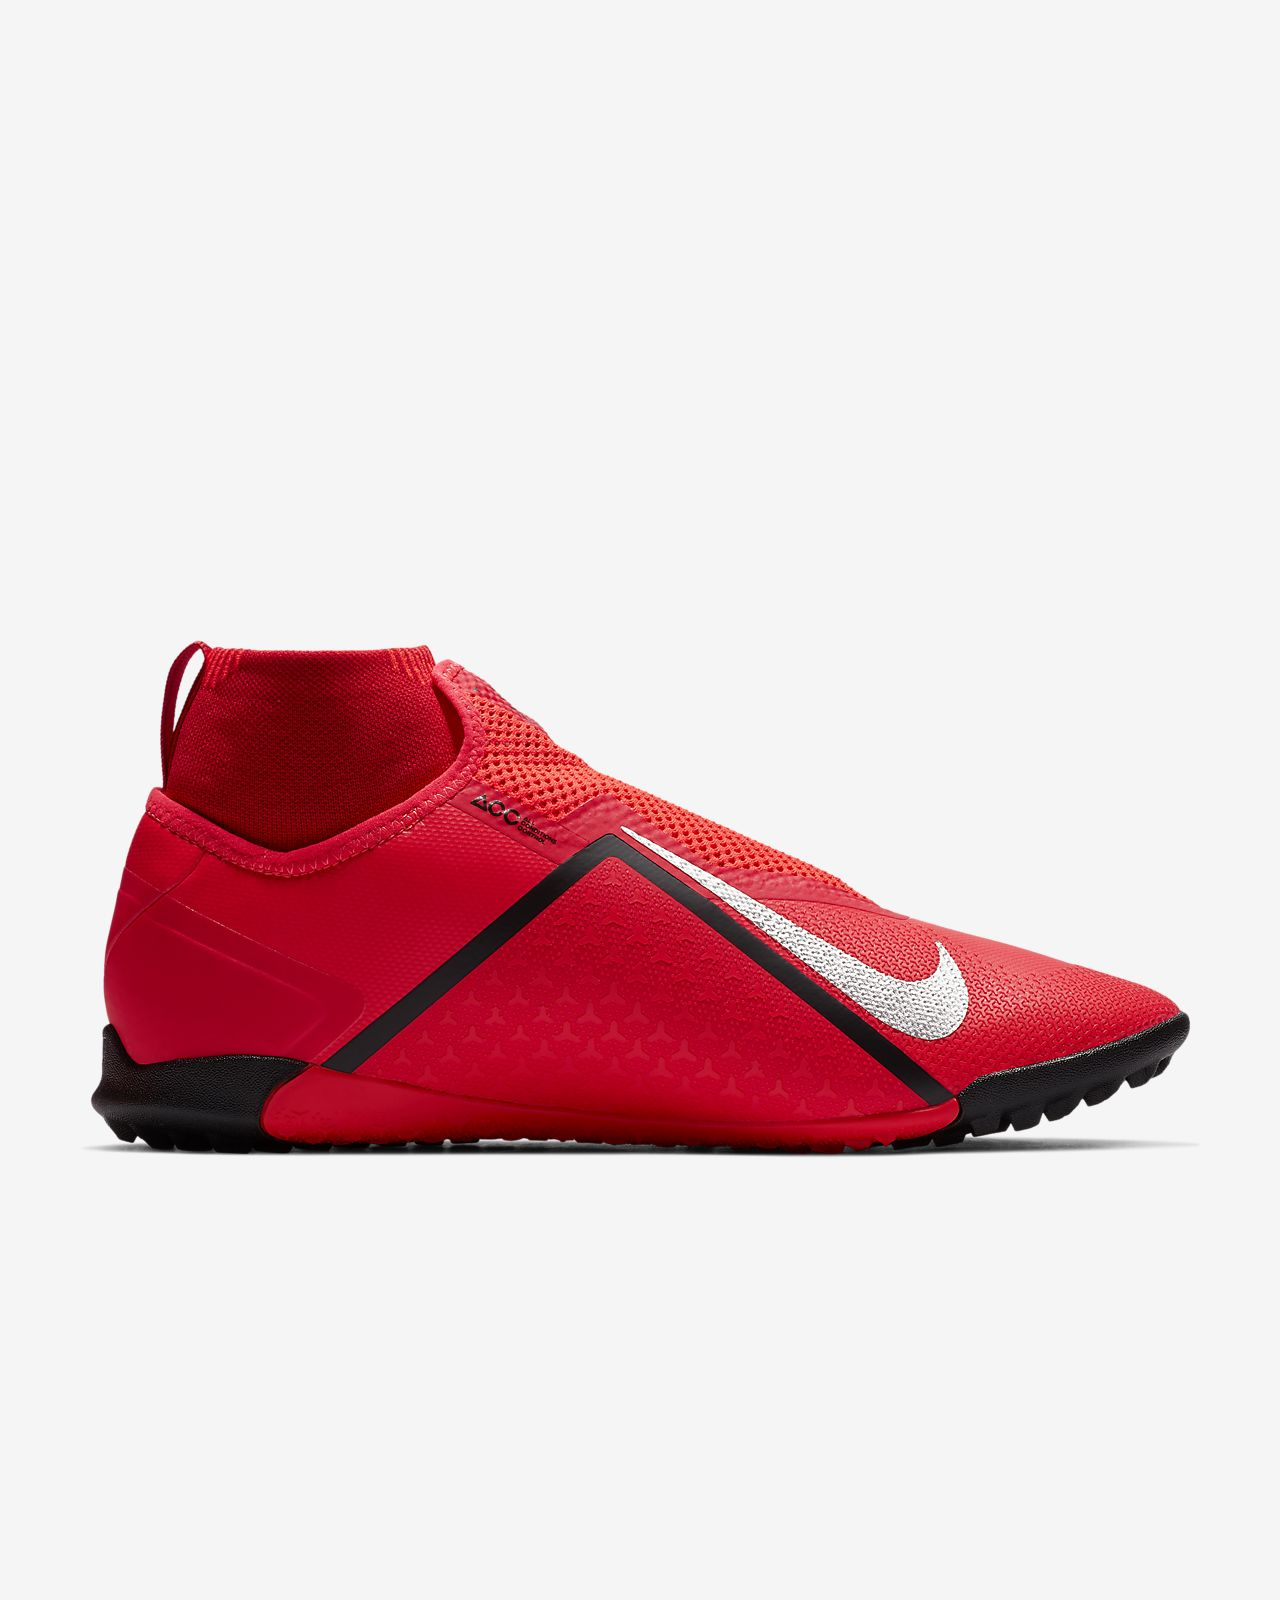 sale retailer bc3a3 6b0ae ... Chaussure de football pour surface synthétique Nike React PhantomVSN Pro  Dynamic Fit Game Over TF